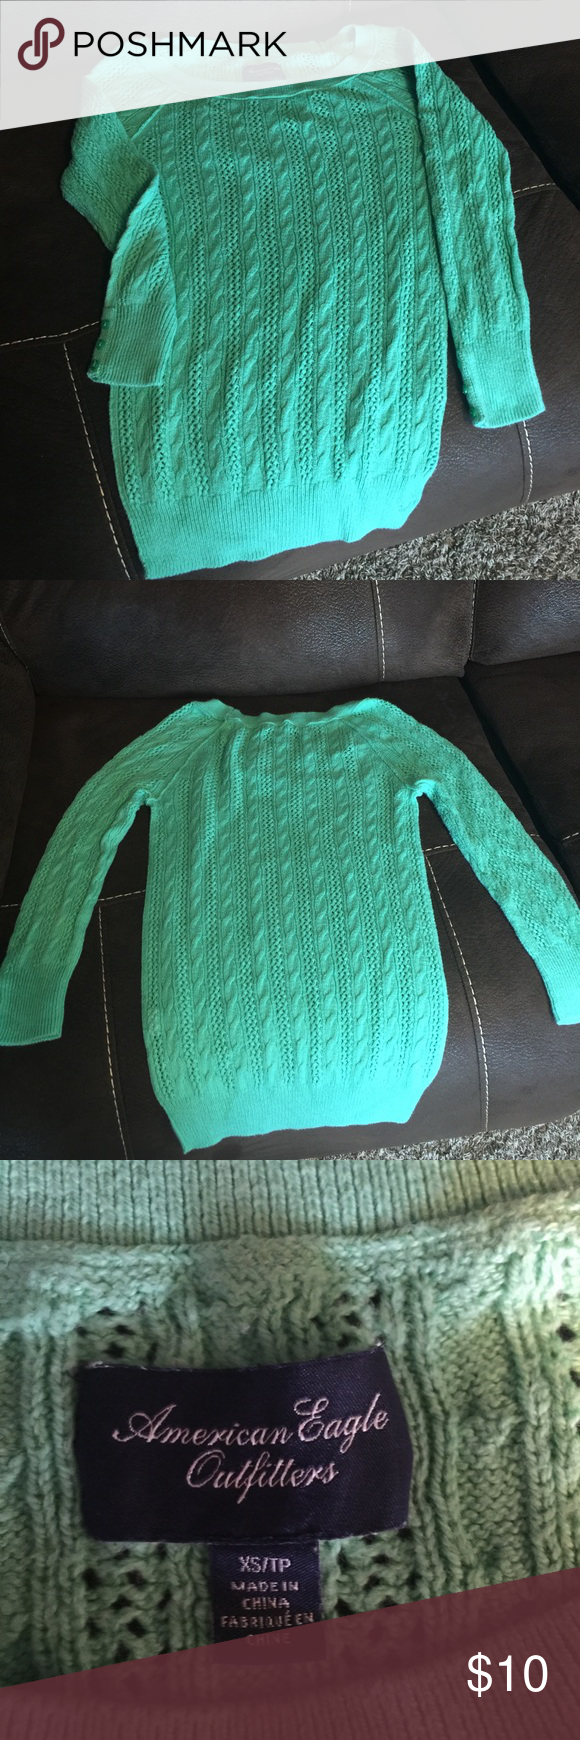 American Eagle sweater Very cute American Eagle sweater. Good condition, no stains only worn several times American Eagle Outfitters Sweaters Crew & Scoop Necks